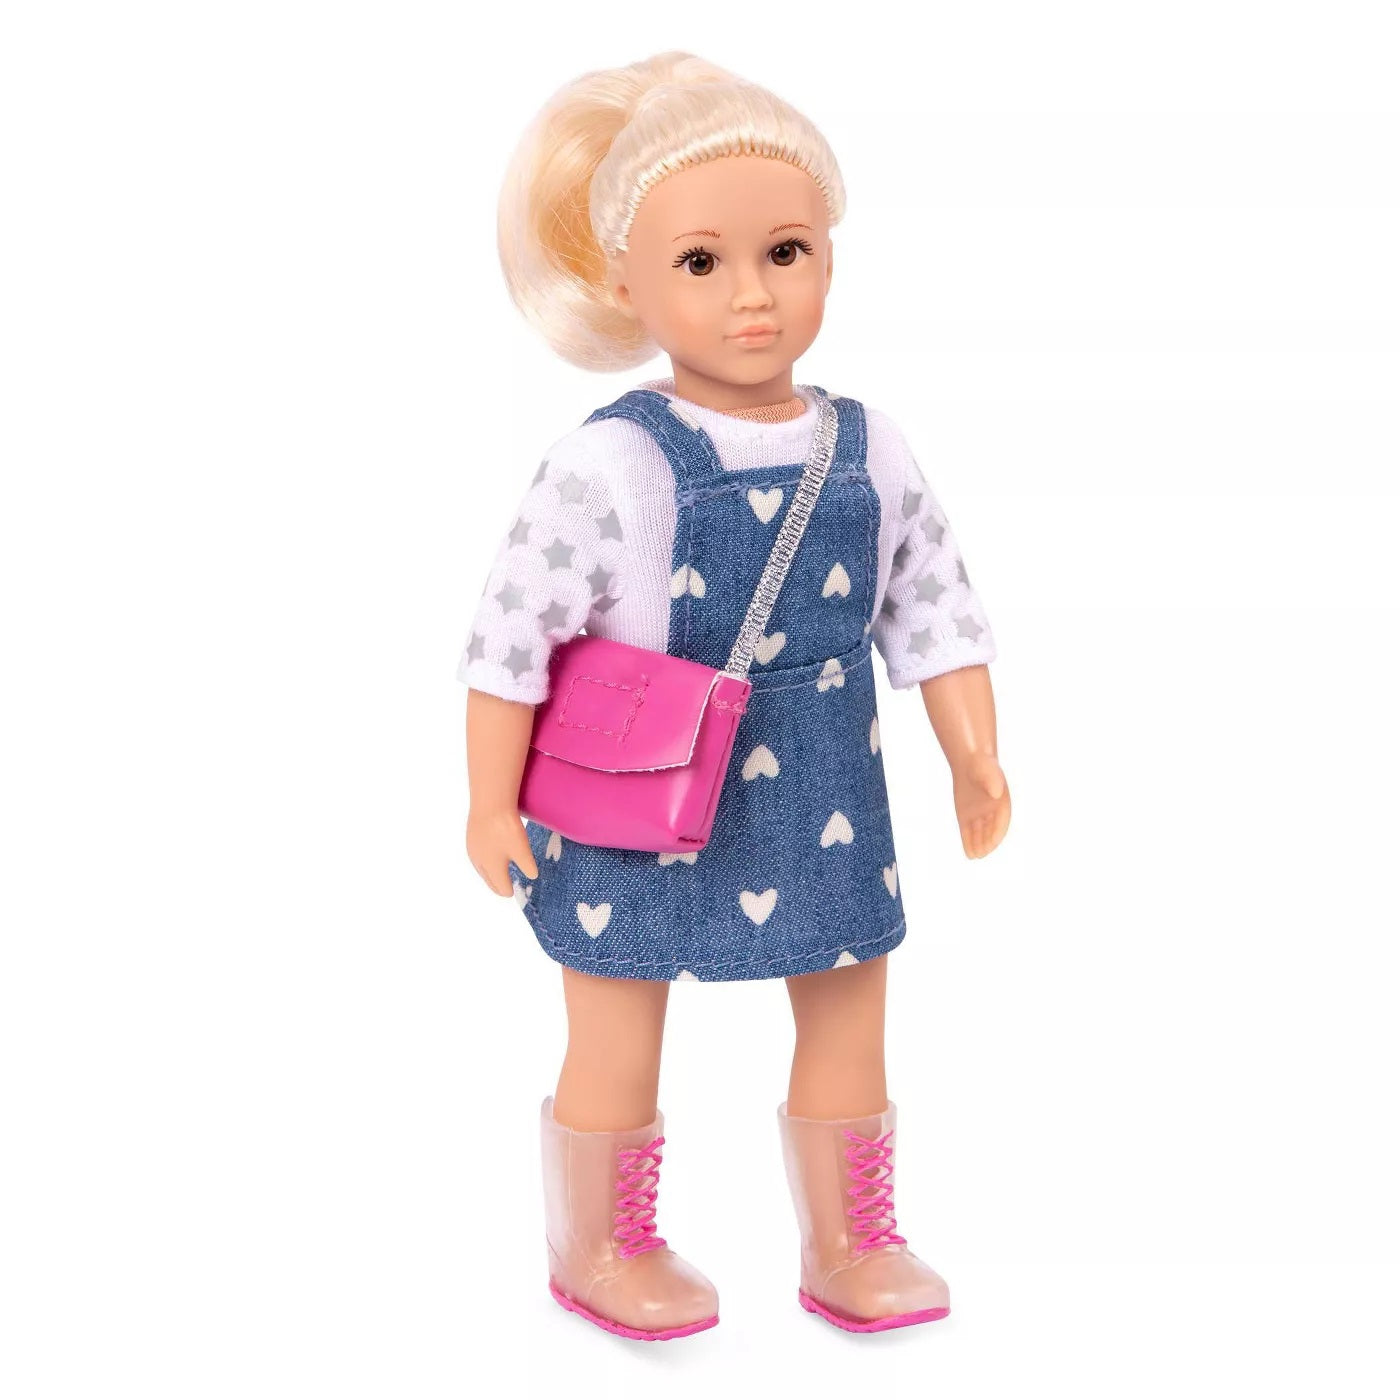 Lori Regular Doll - Savana